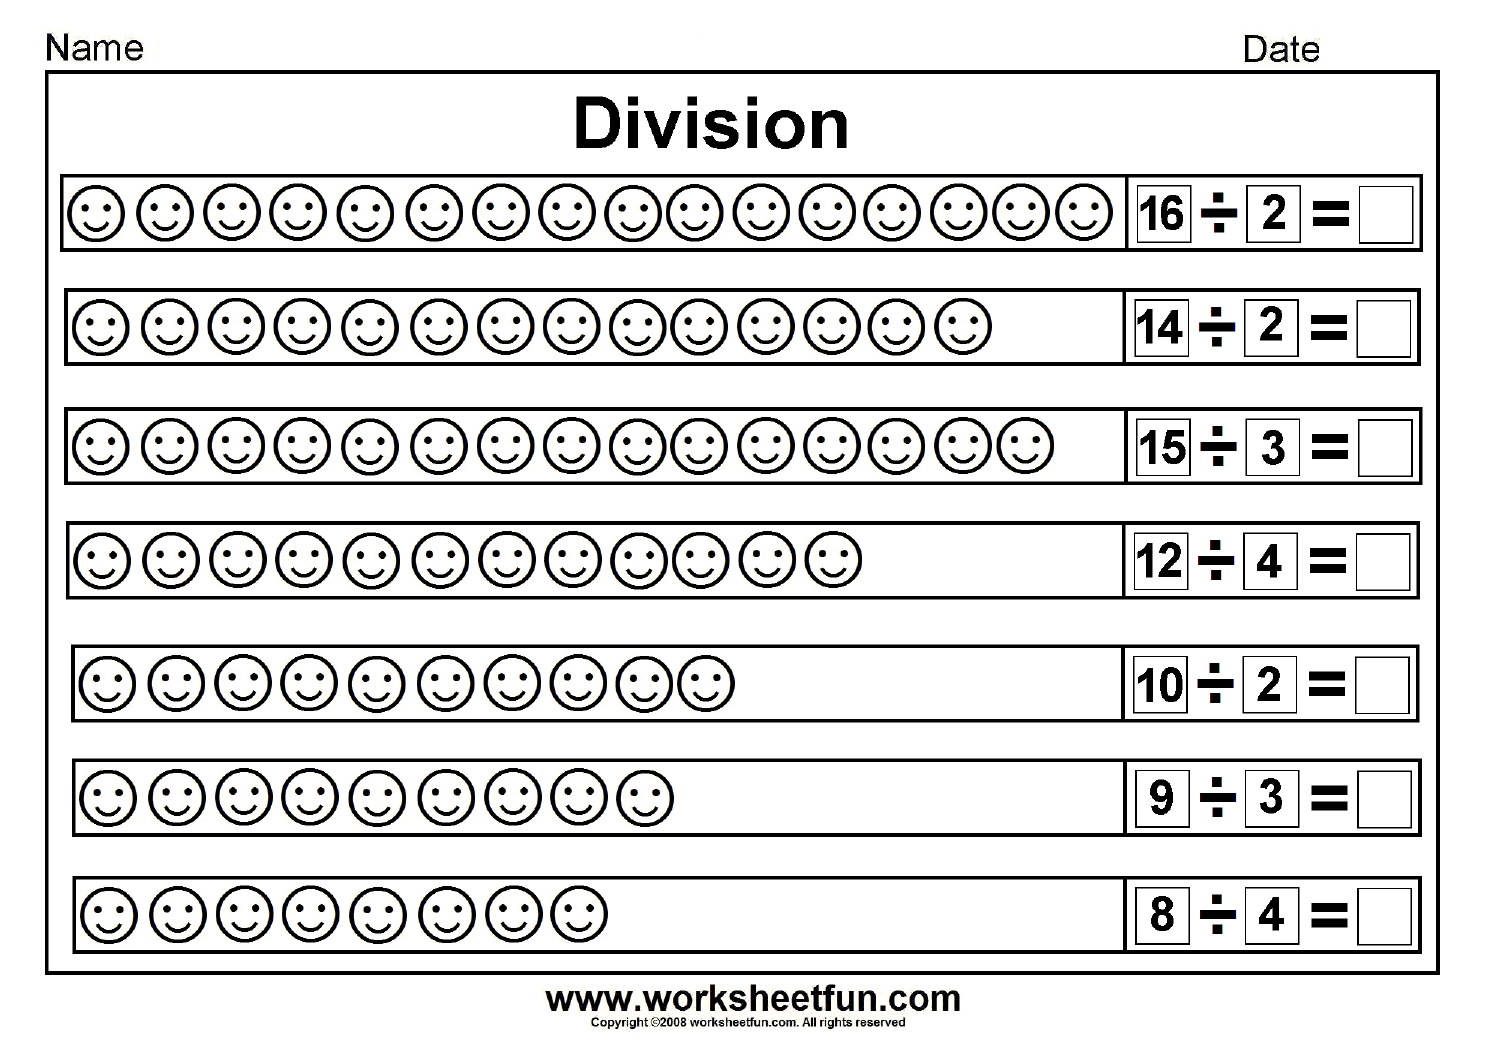 Division Worksheet Year 2 Tes